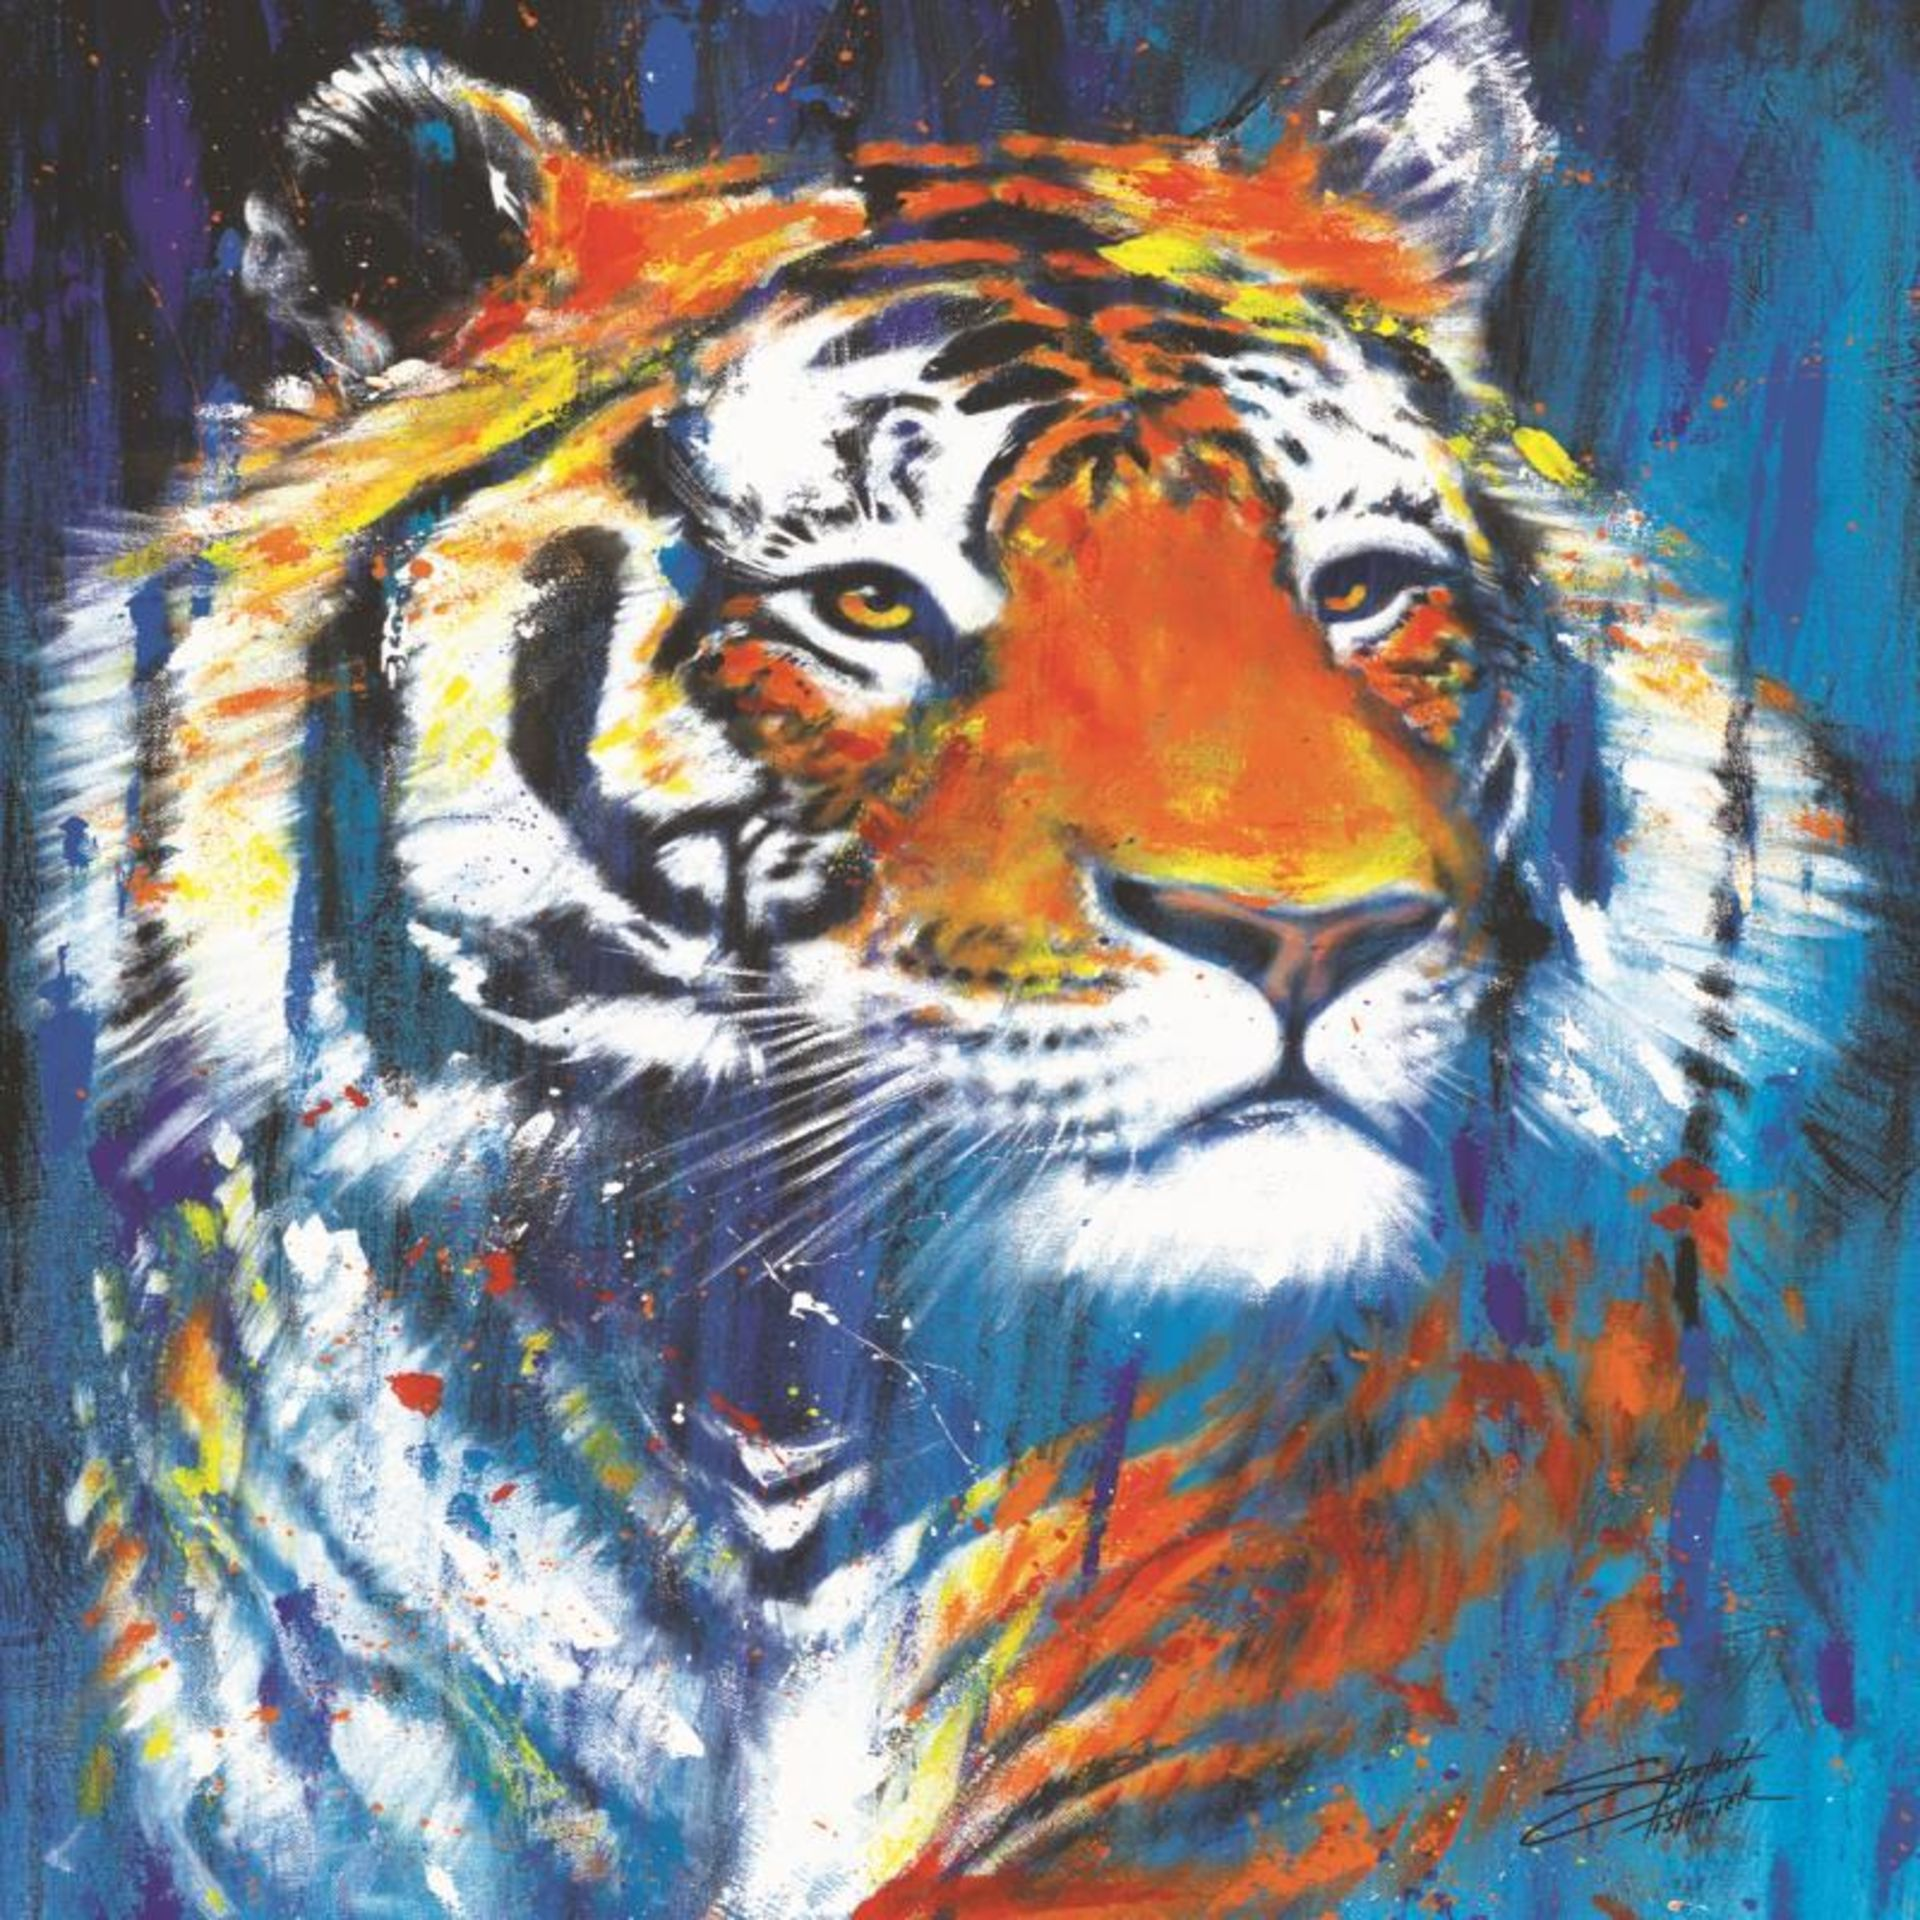 """Nala"" Limited Edition Giclee on Canvas by Stephen Fishwick, Numbered and Signed - Image 2 of 3"